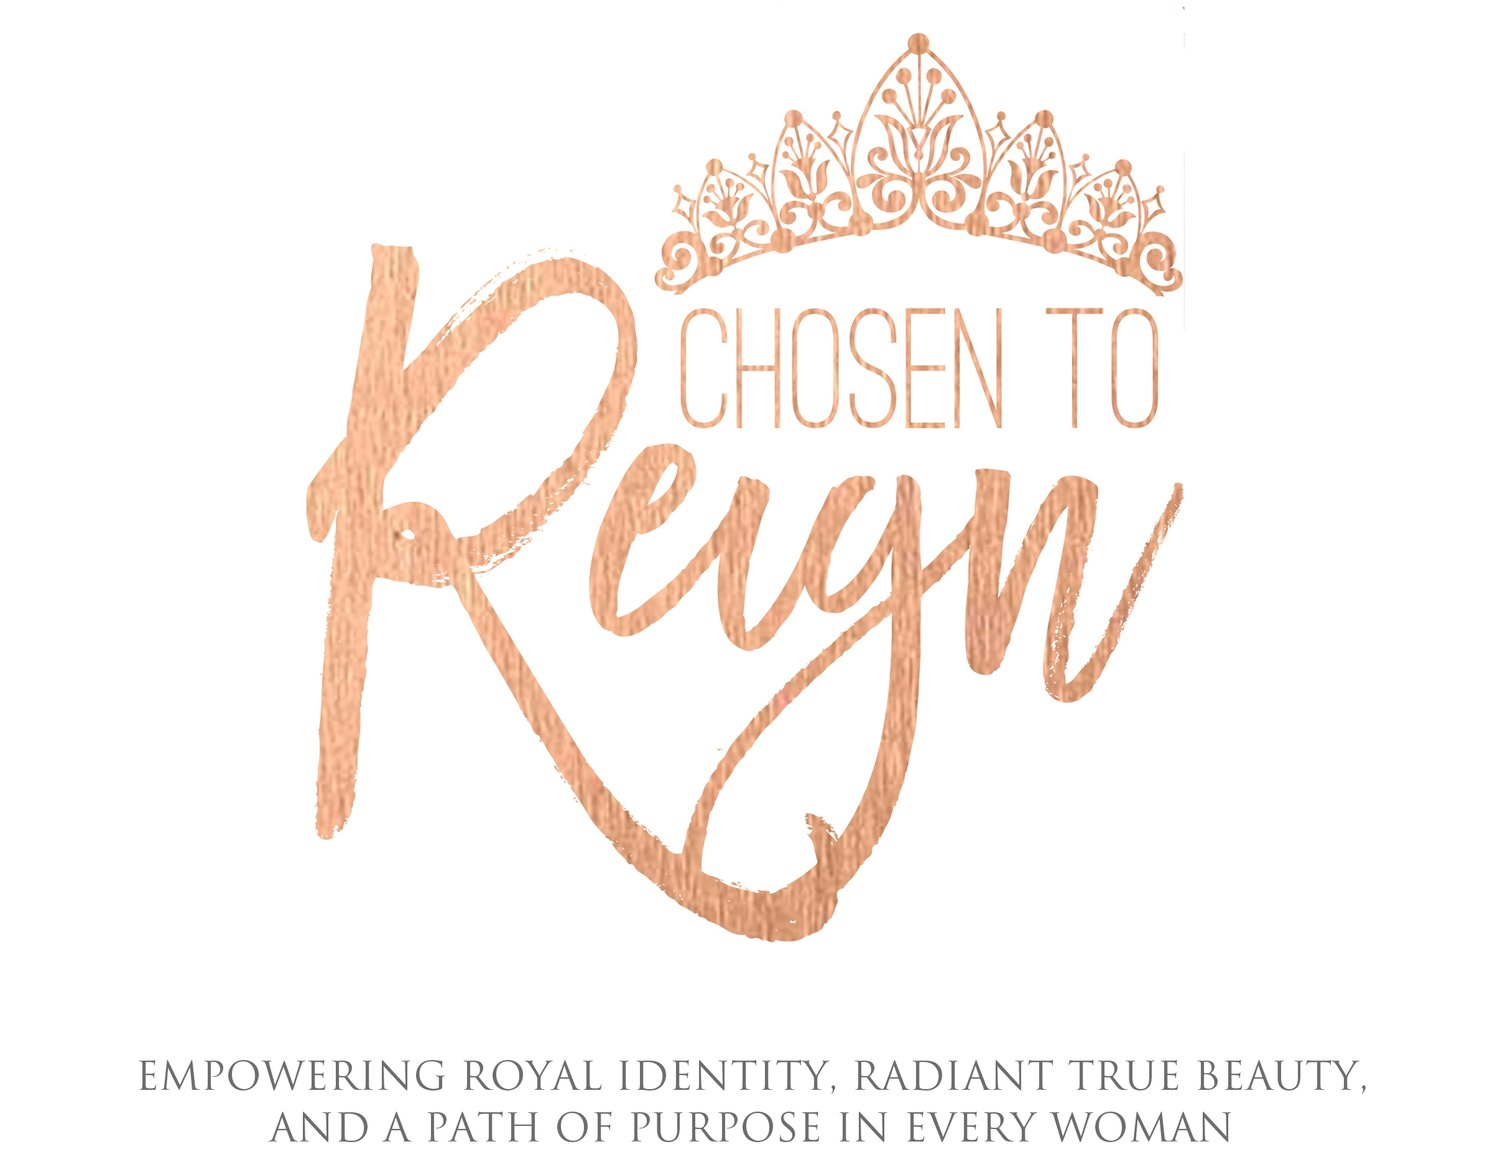 Chosen To Reign - BY HEATHER SWANSON